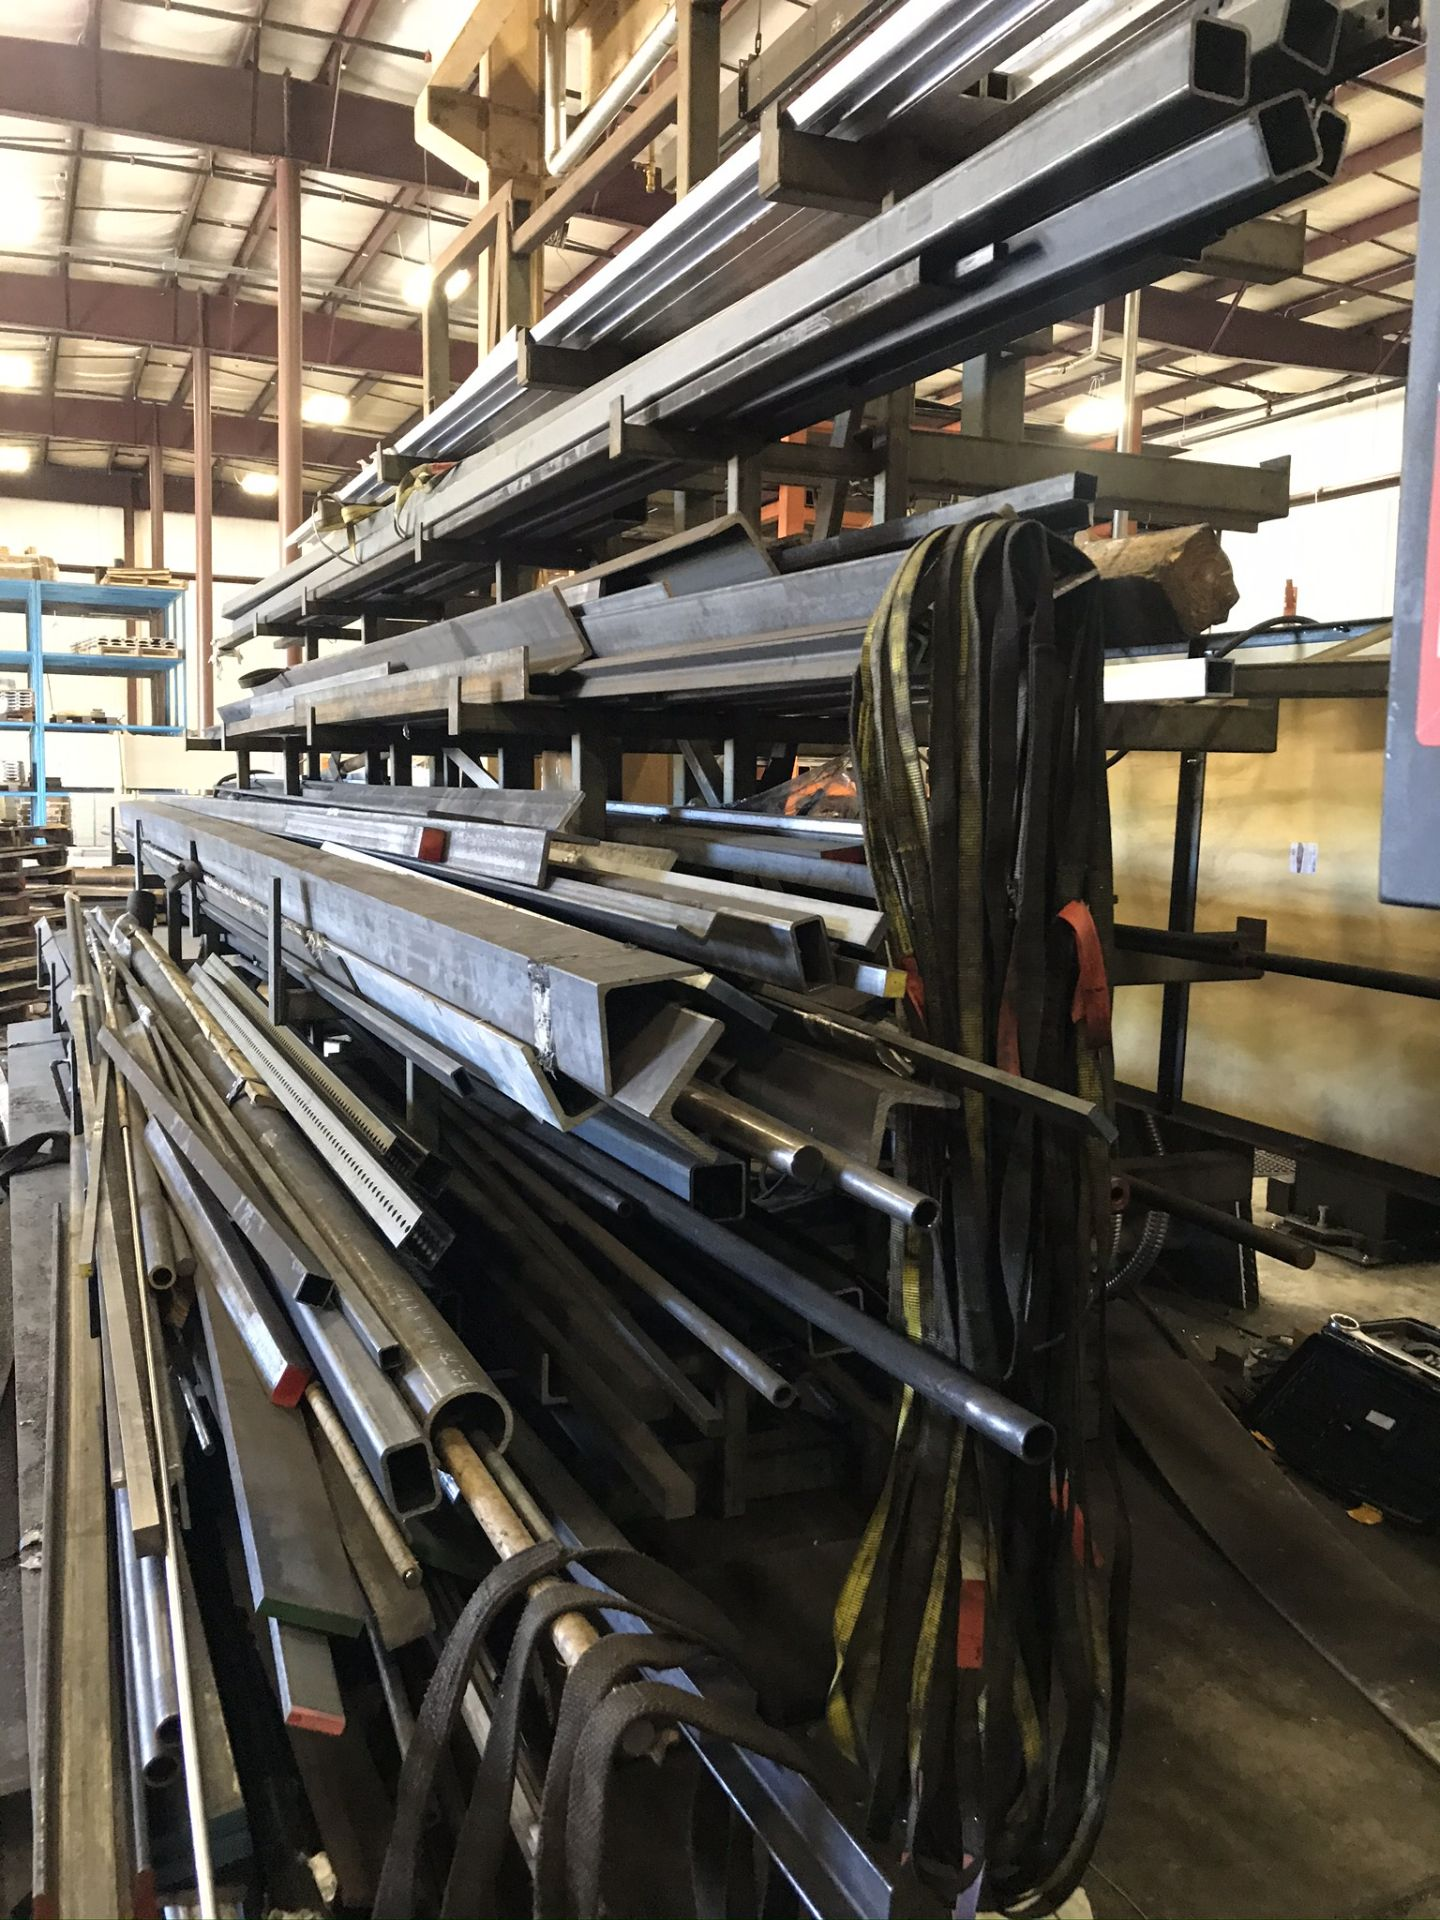 Two Sided Steel Rack Complete with Structural Steel, Bar Stock, Aluminum, Etc. - Image 3 of 6